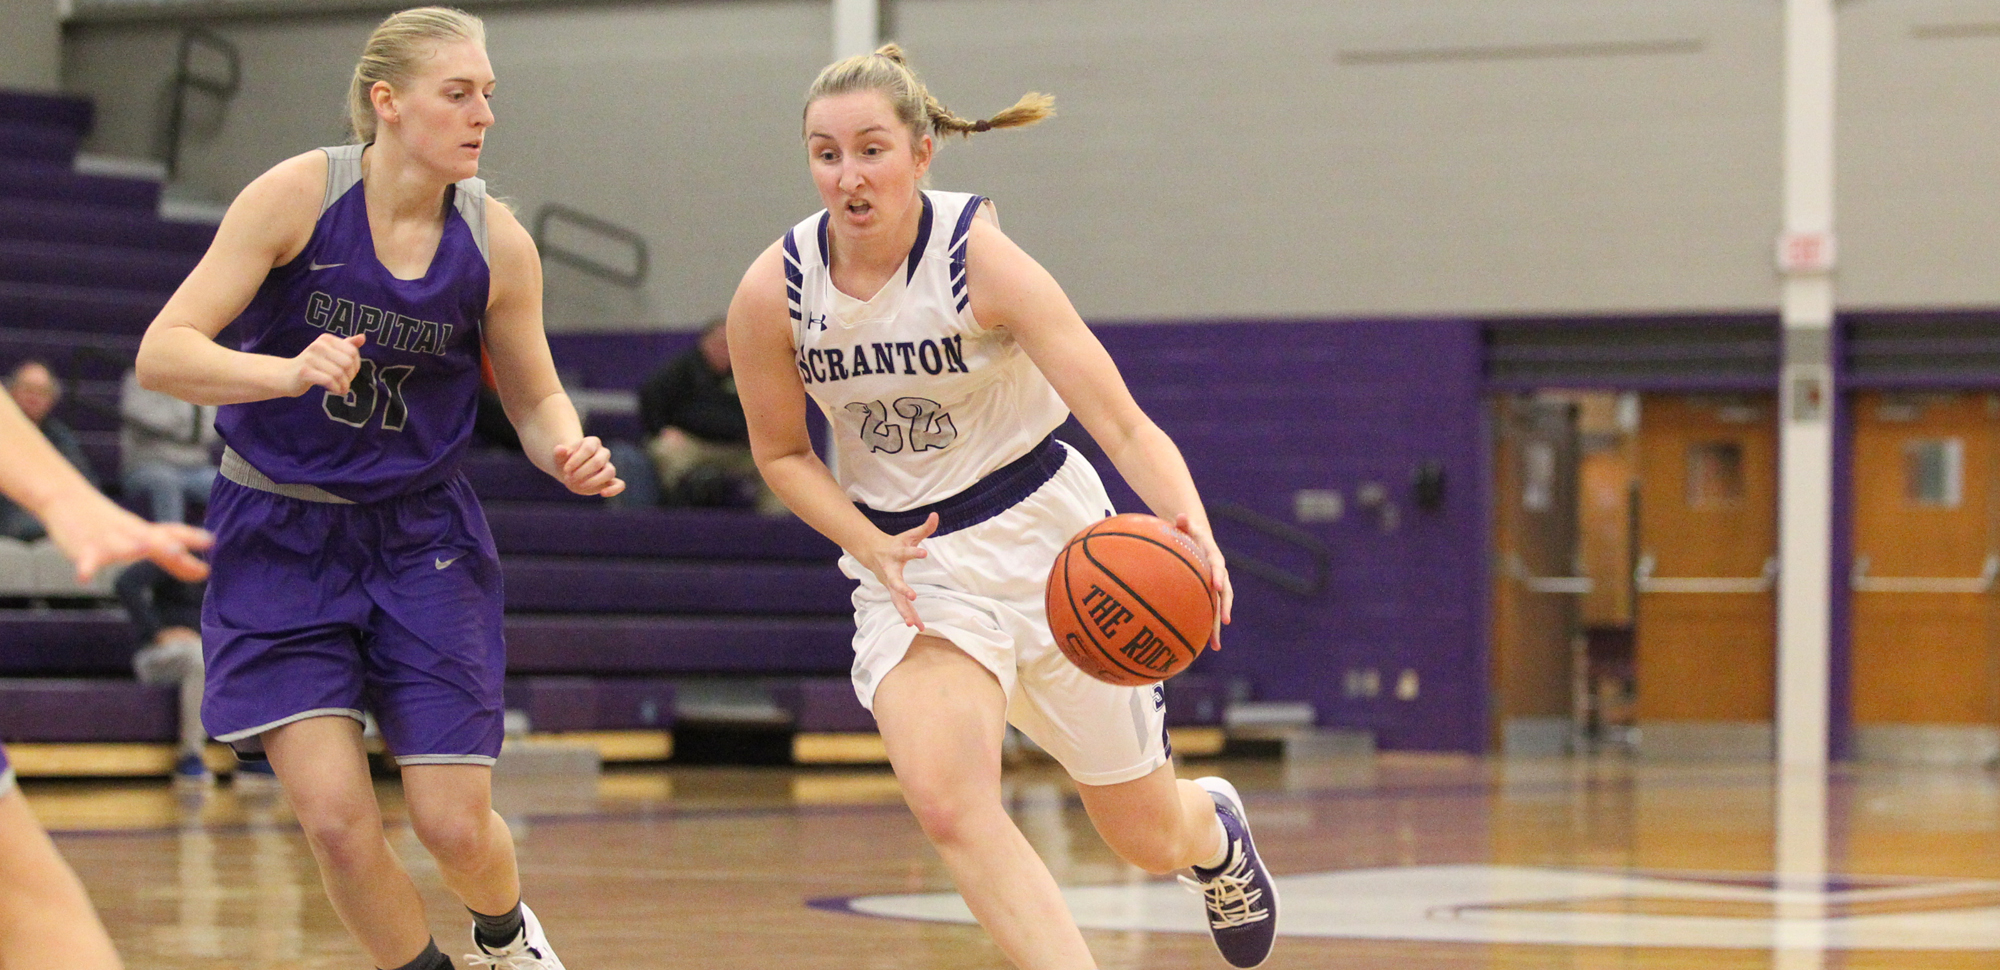 Senior guard Makenzie Mason was named a Preseason First Team All-American by D3Hoops.com on Monday.